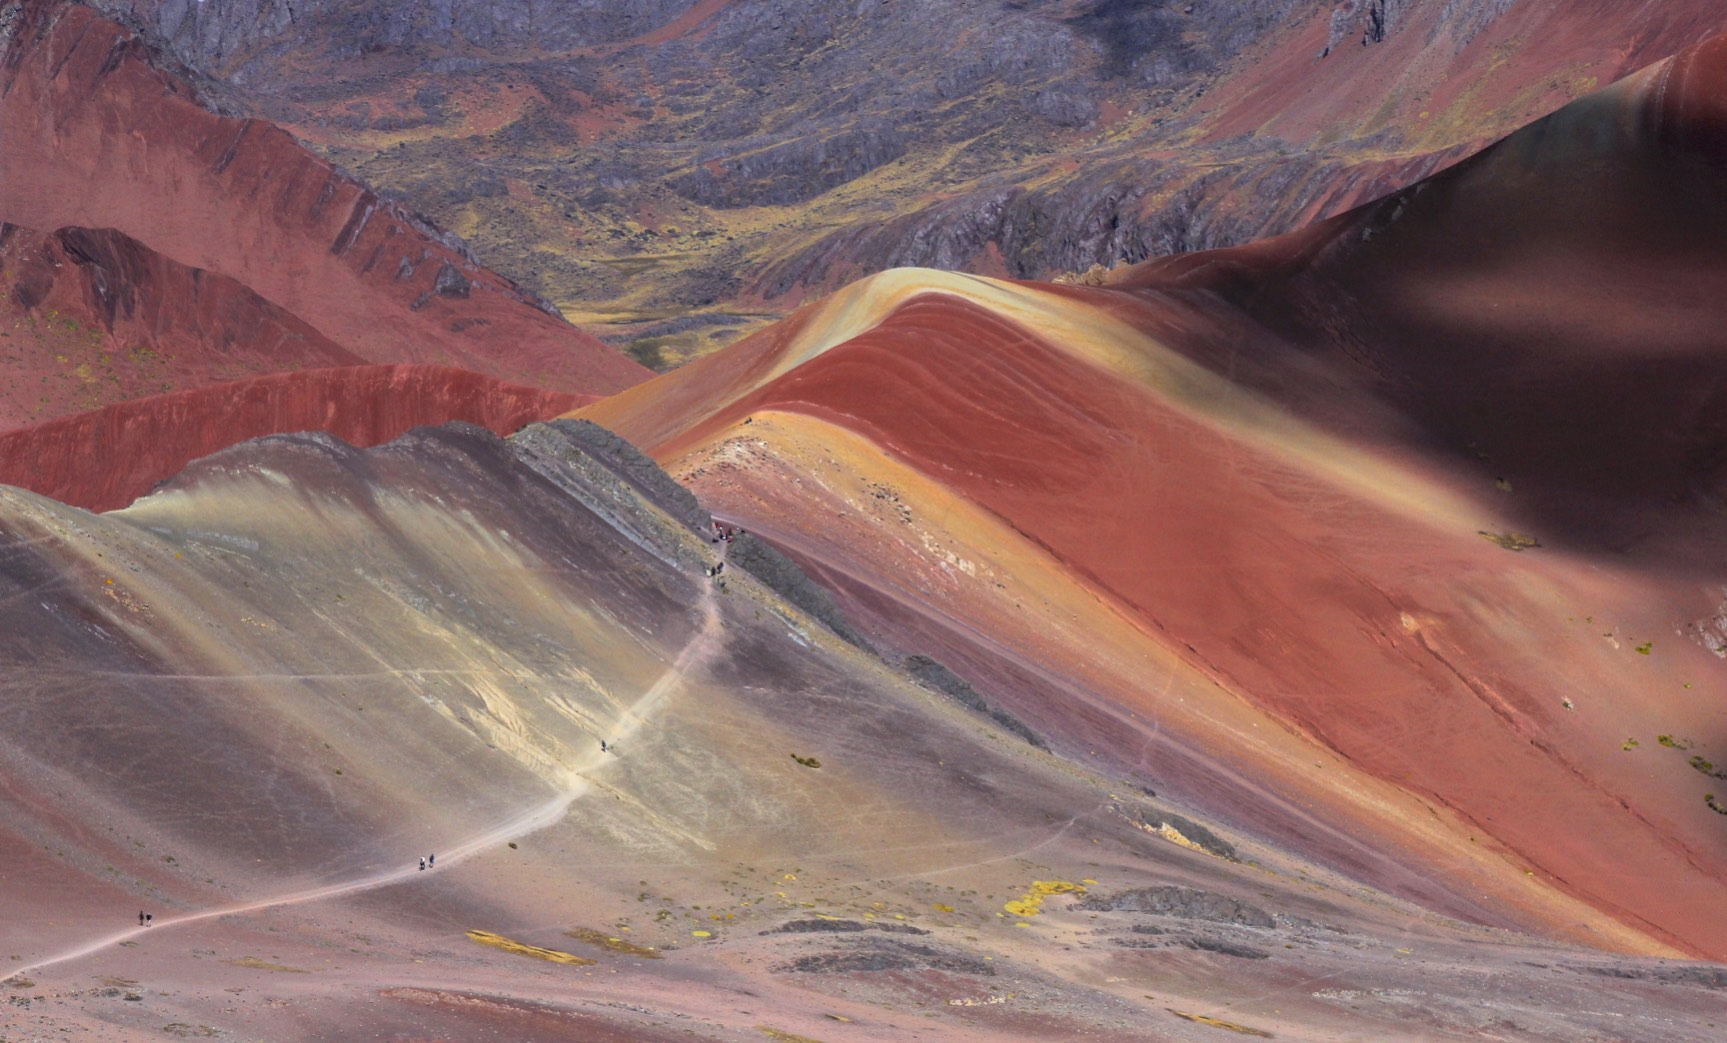 Painted Mountains and the Red Valley